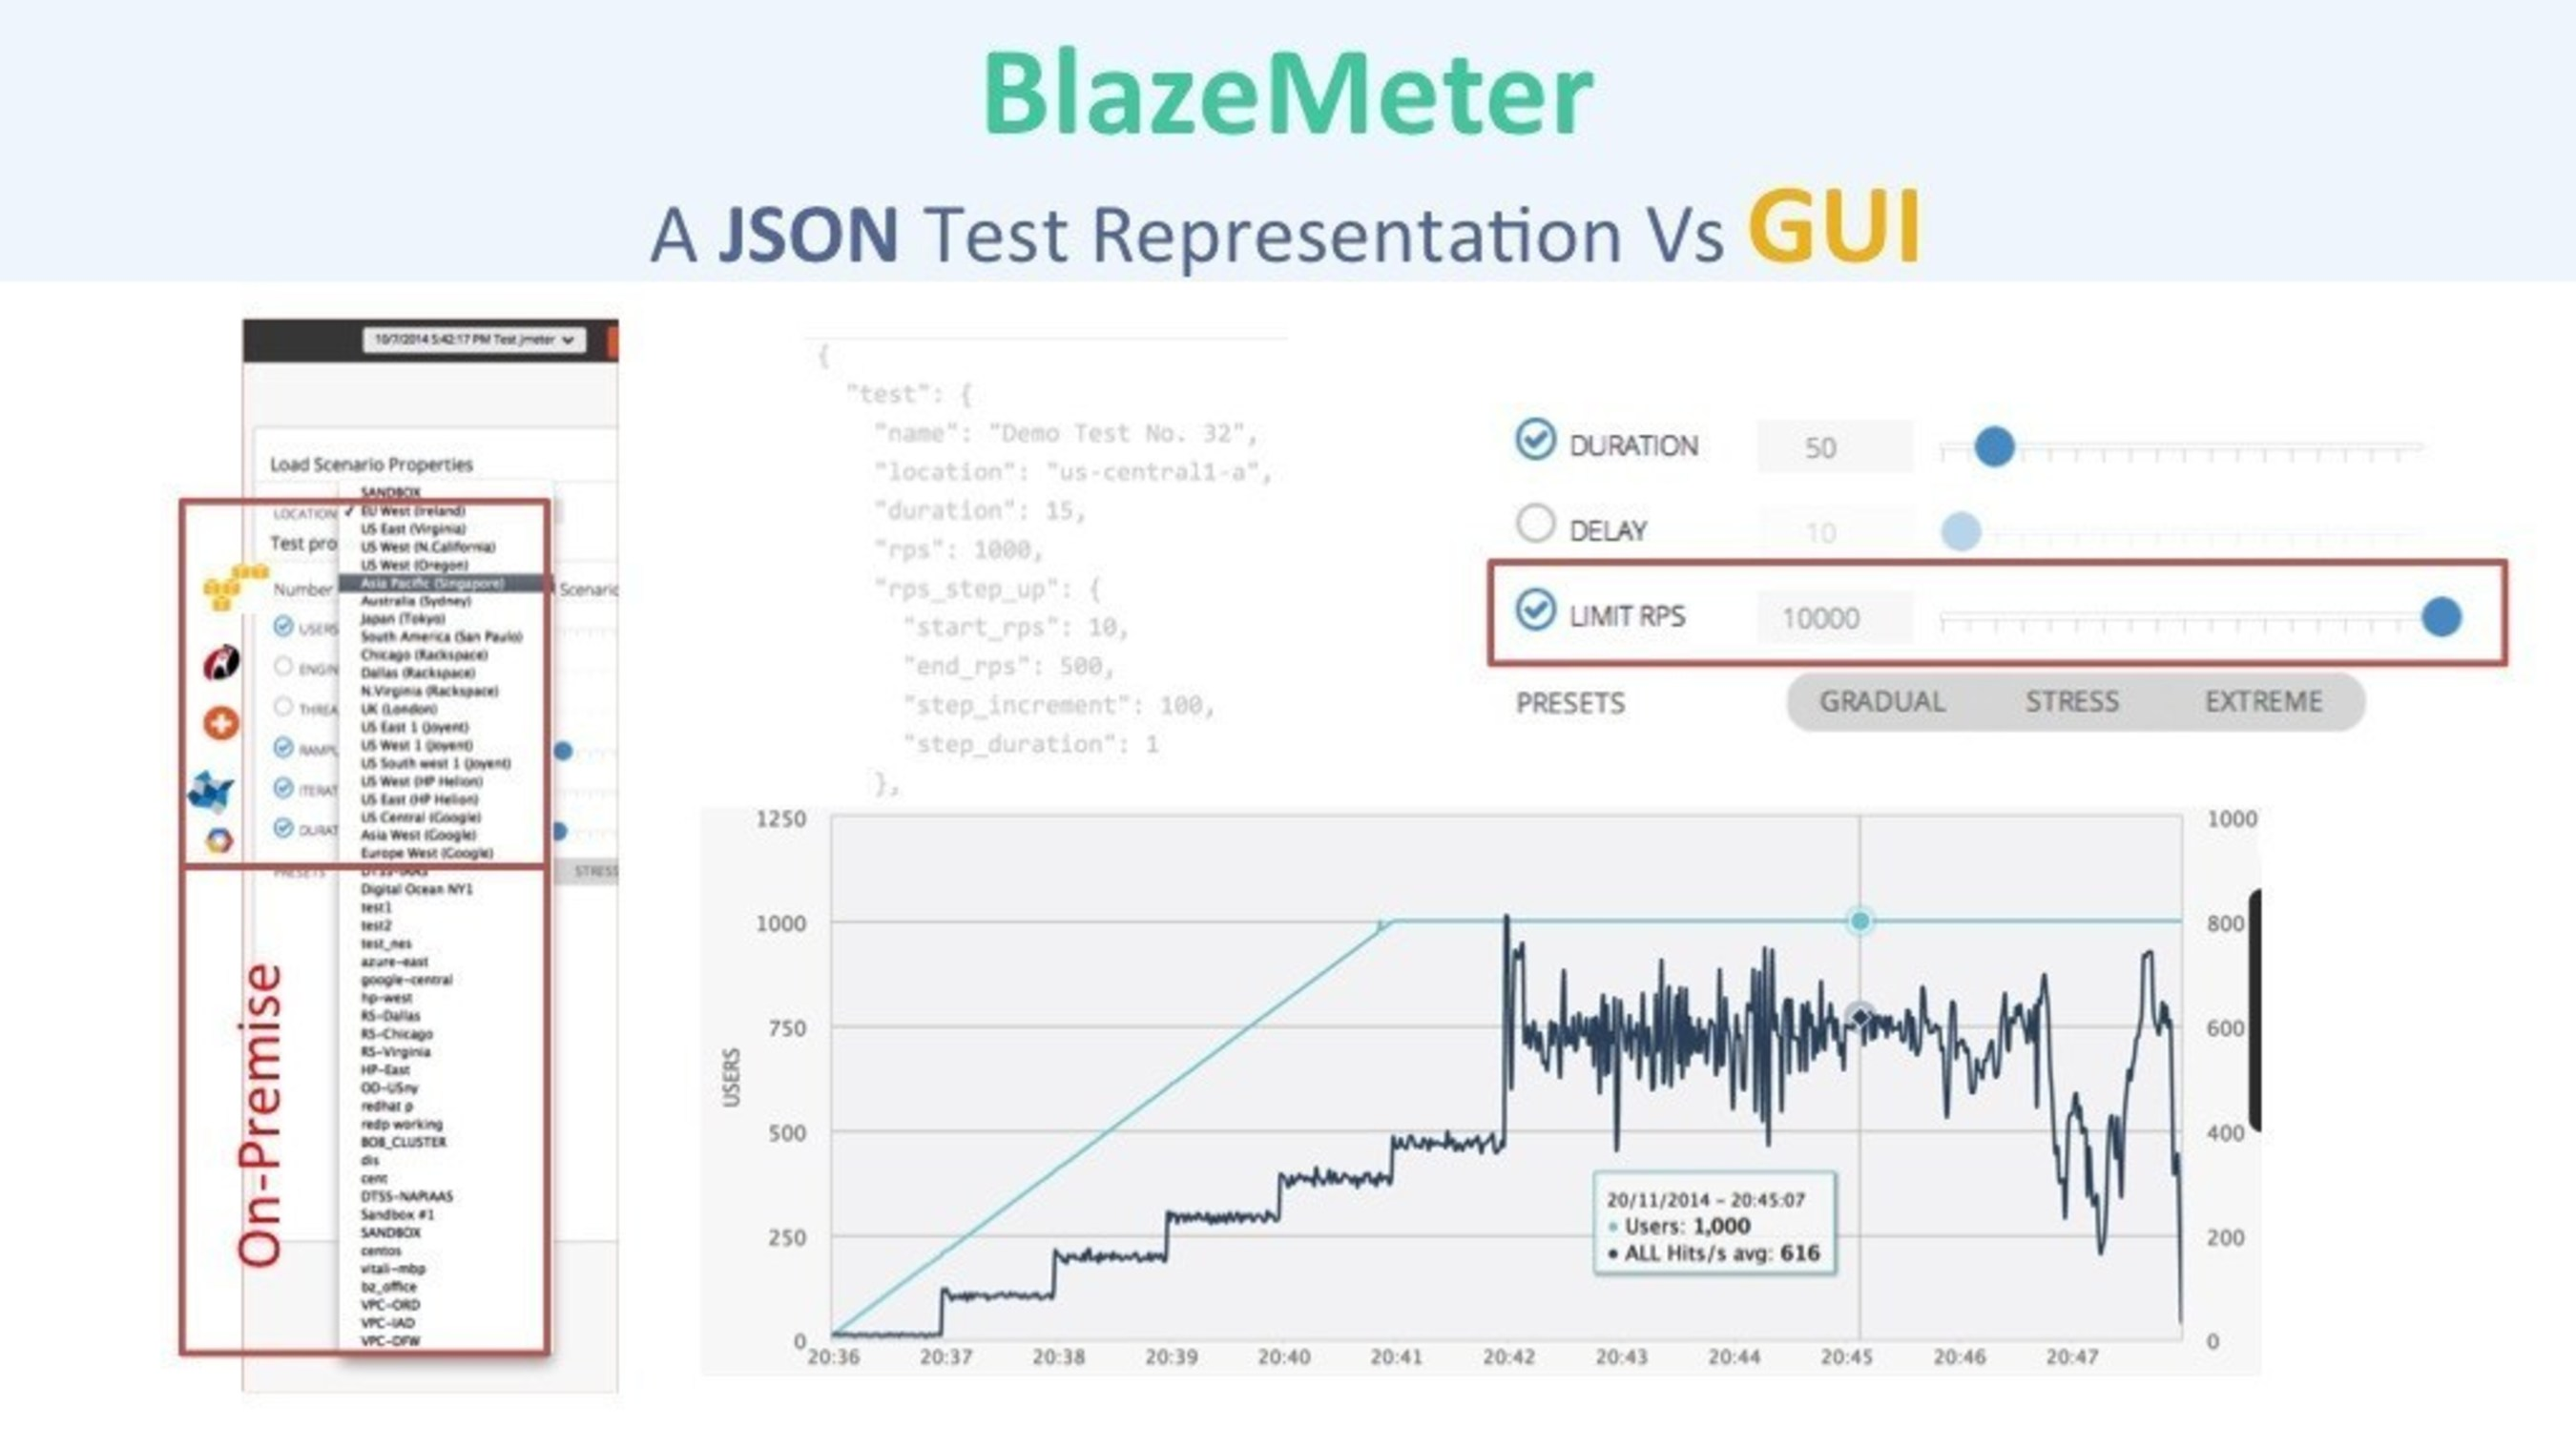 BlazeMeter's Continuous Testing as a Services allows developers to replace scripts and use industry standard JSON files to configure the load test.